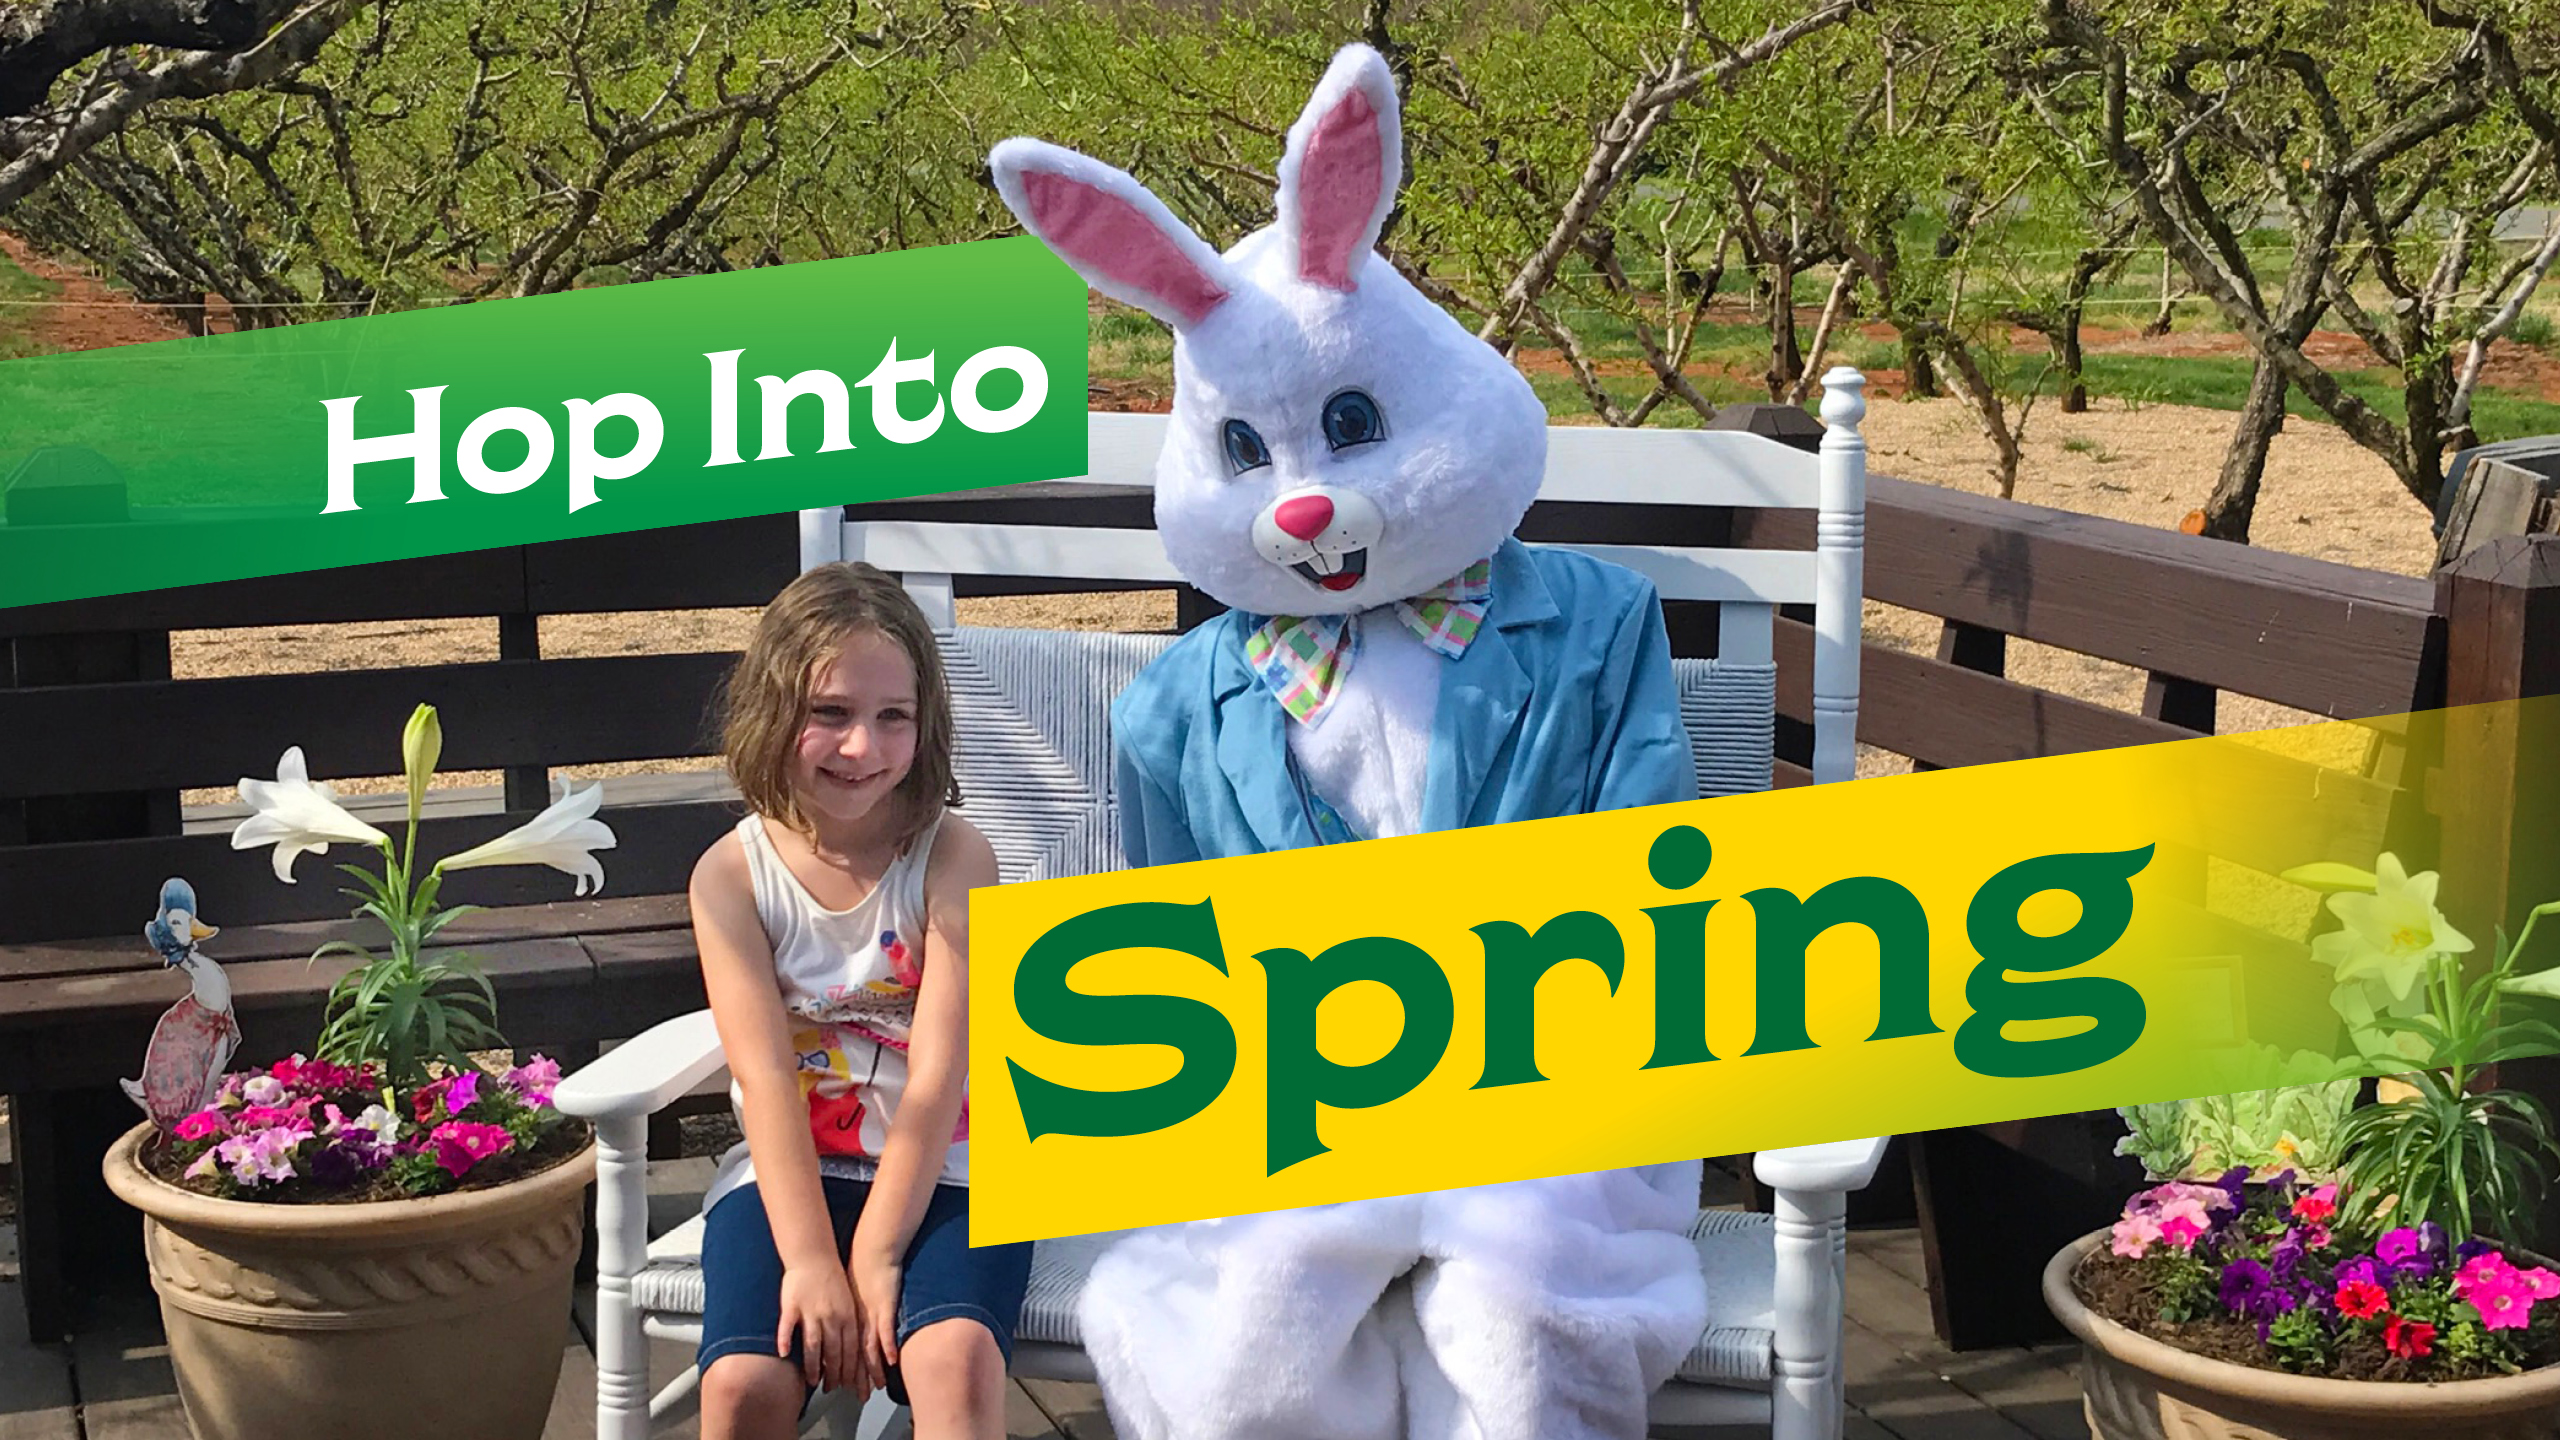 Hop Into Spring Easter event at Chiles Peach Orchard